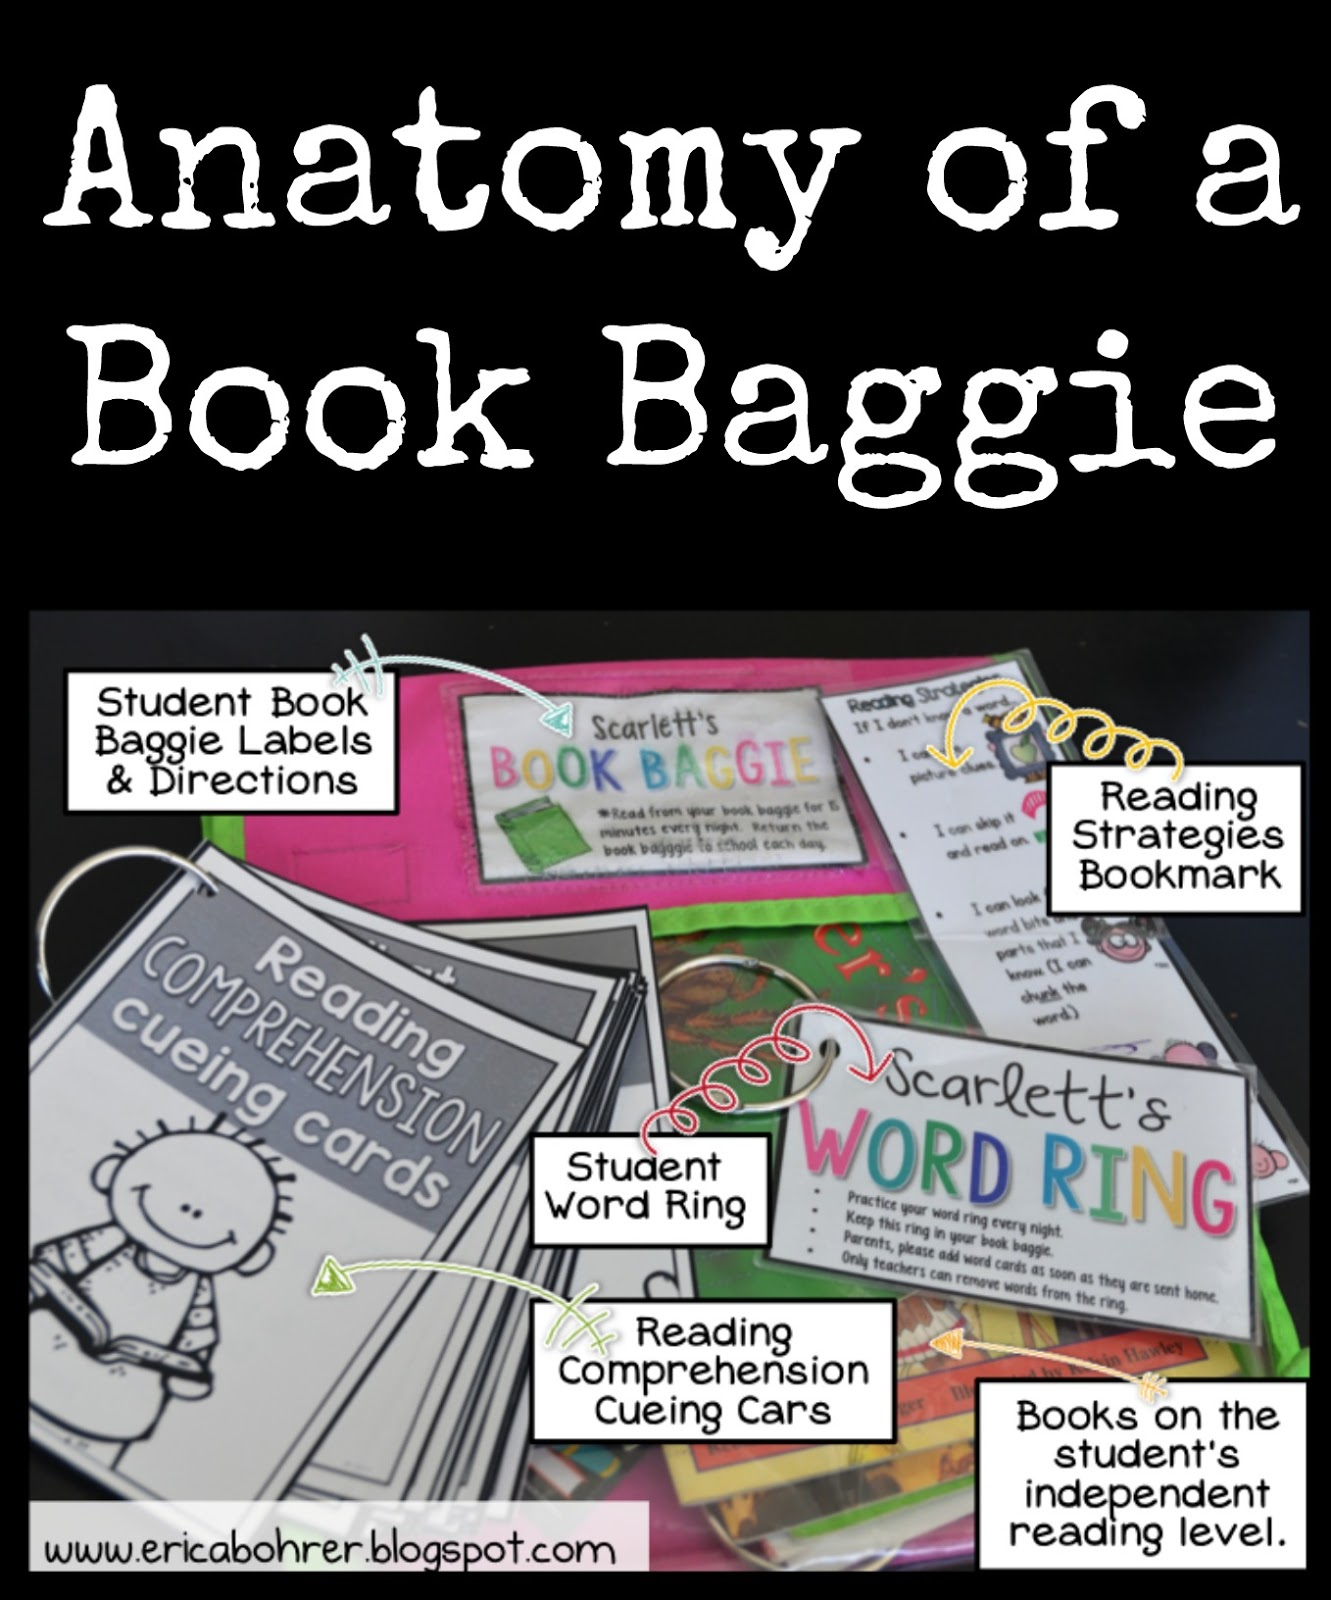 The Anatomy of a Book Baggie